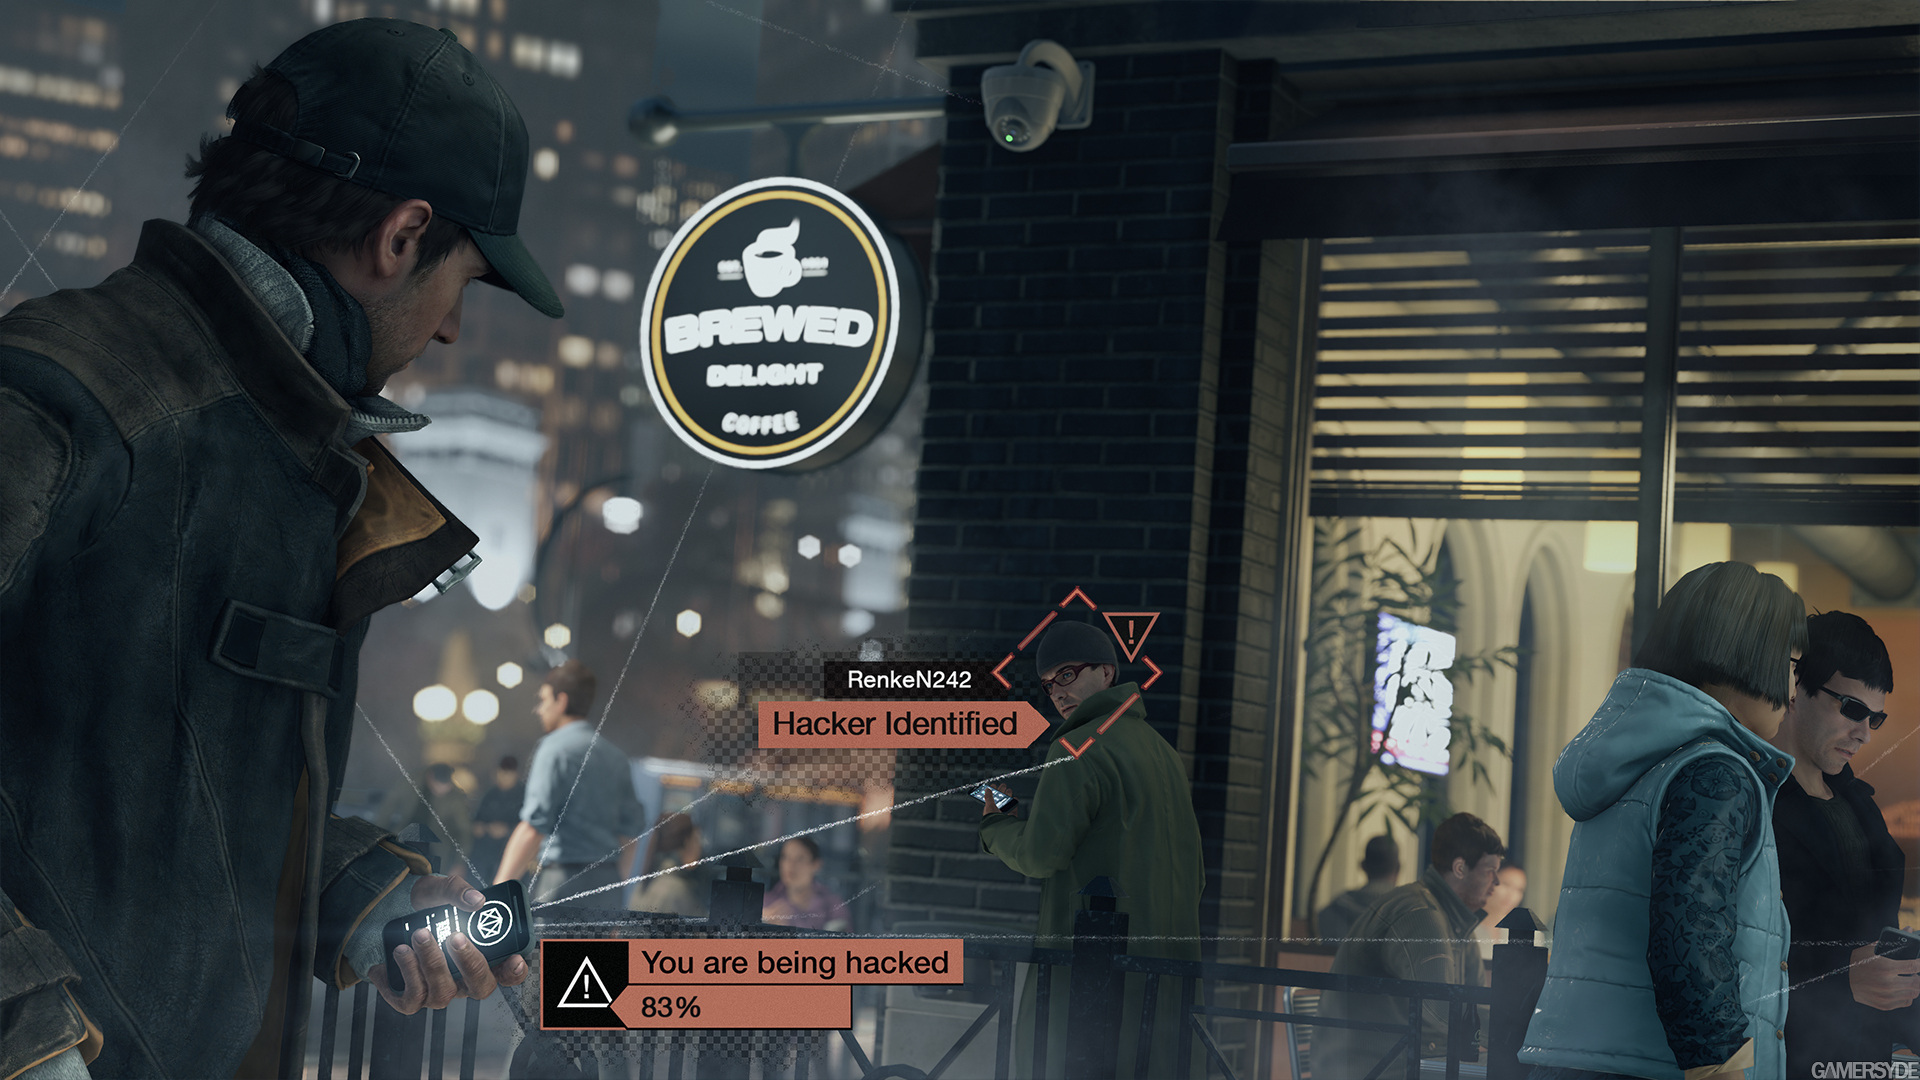 Filtrado video del modo multijugador de Watch Dogs [Video]